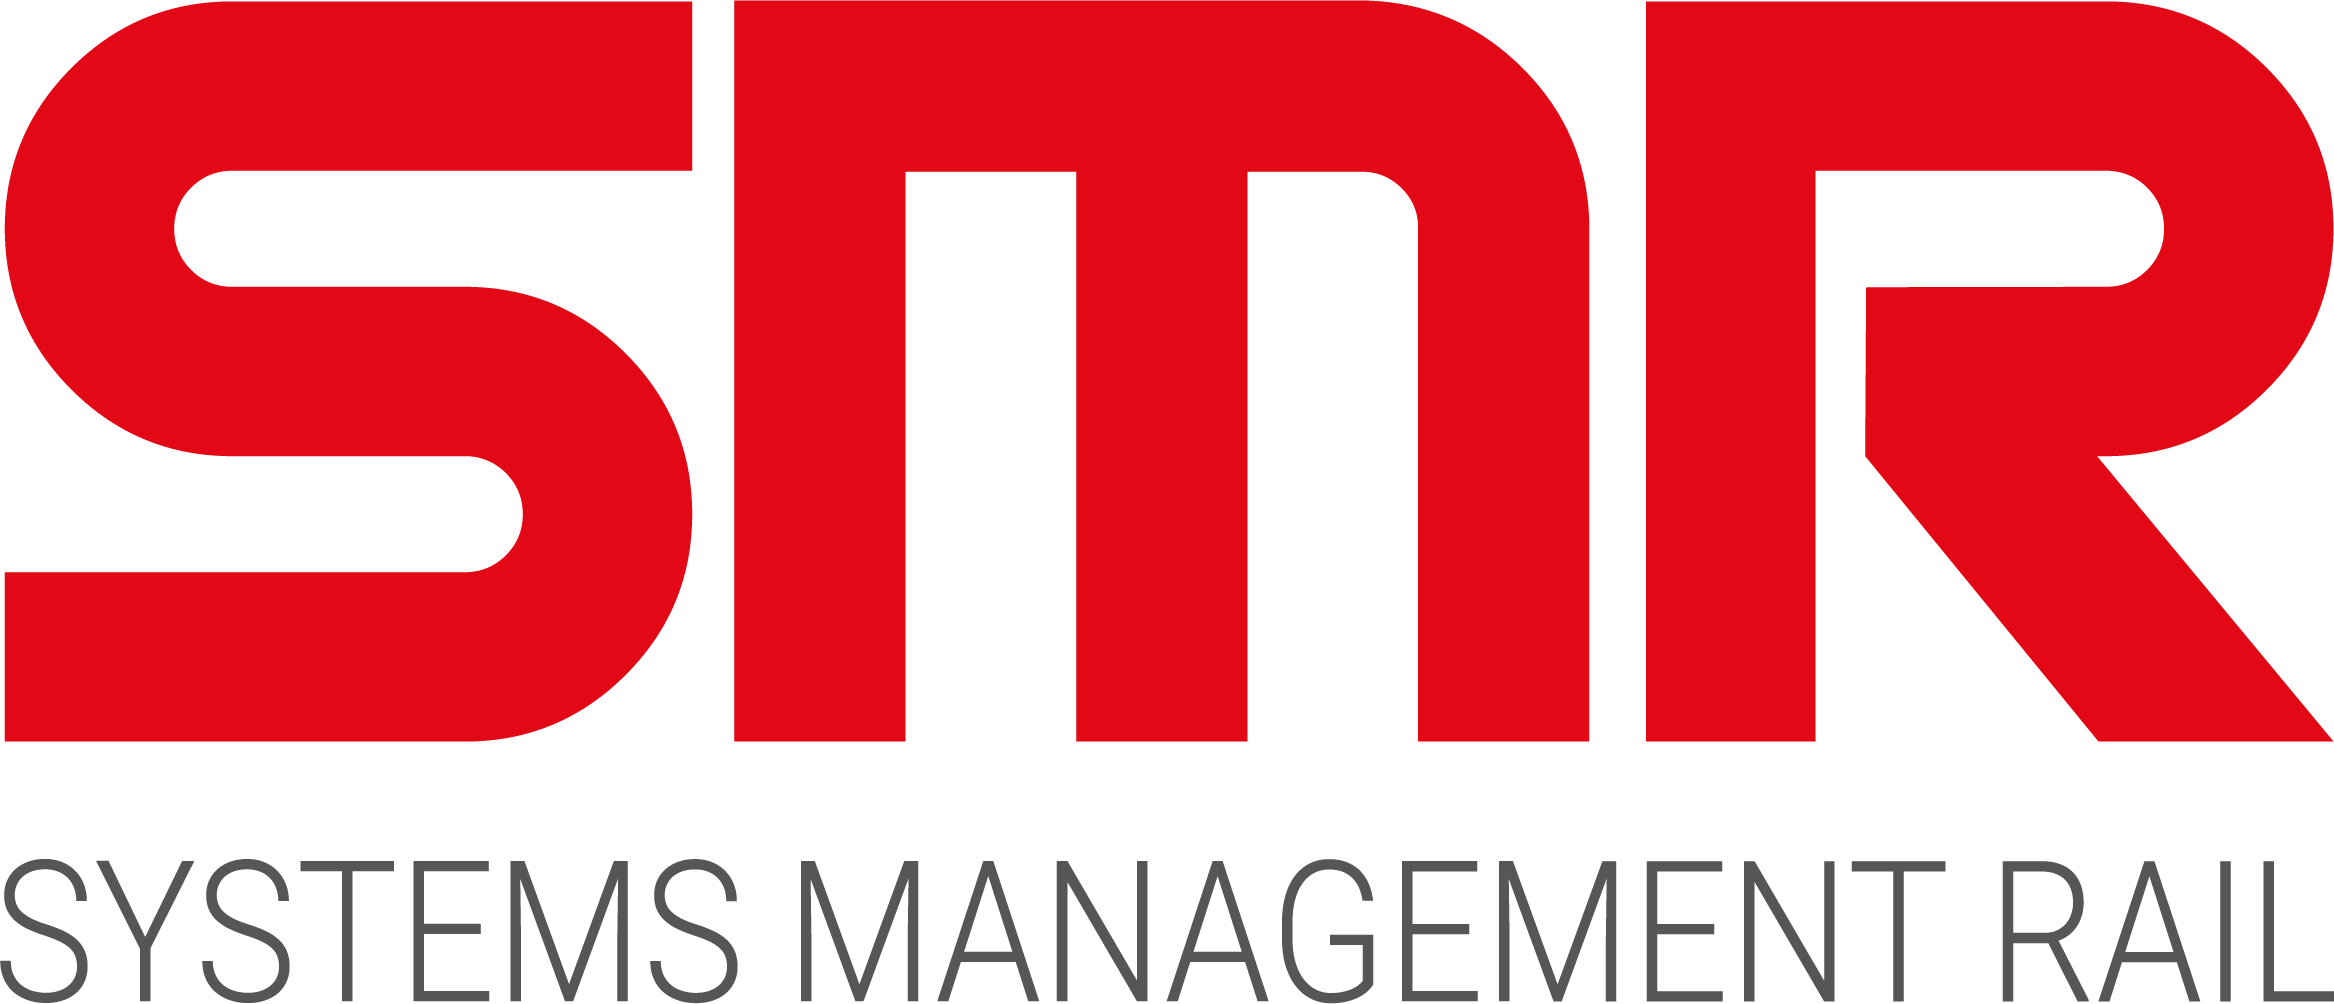 SMR Systems Management Rail GmbH